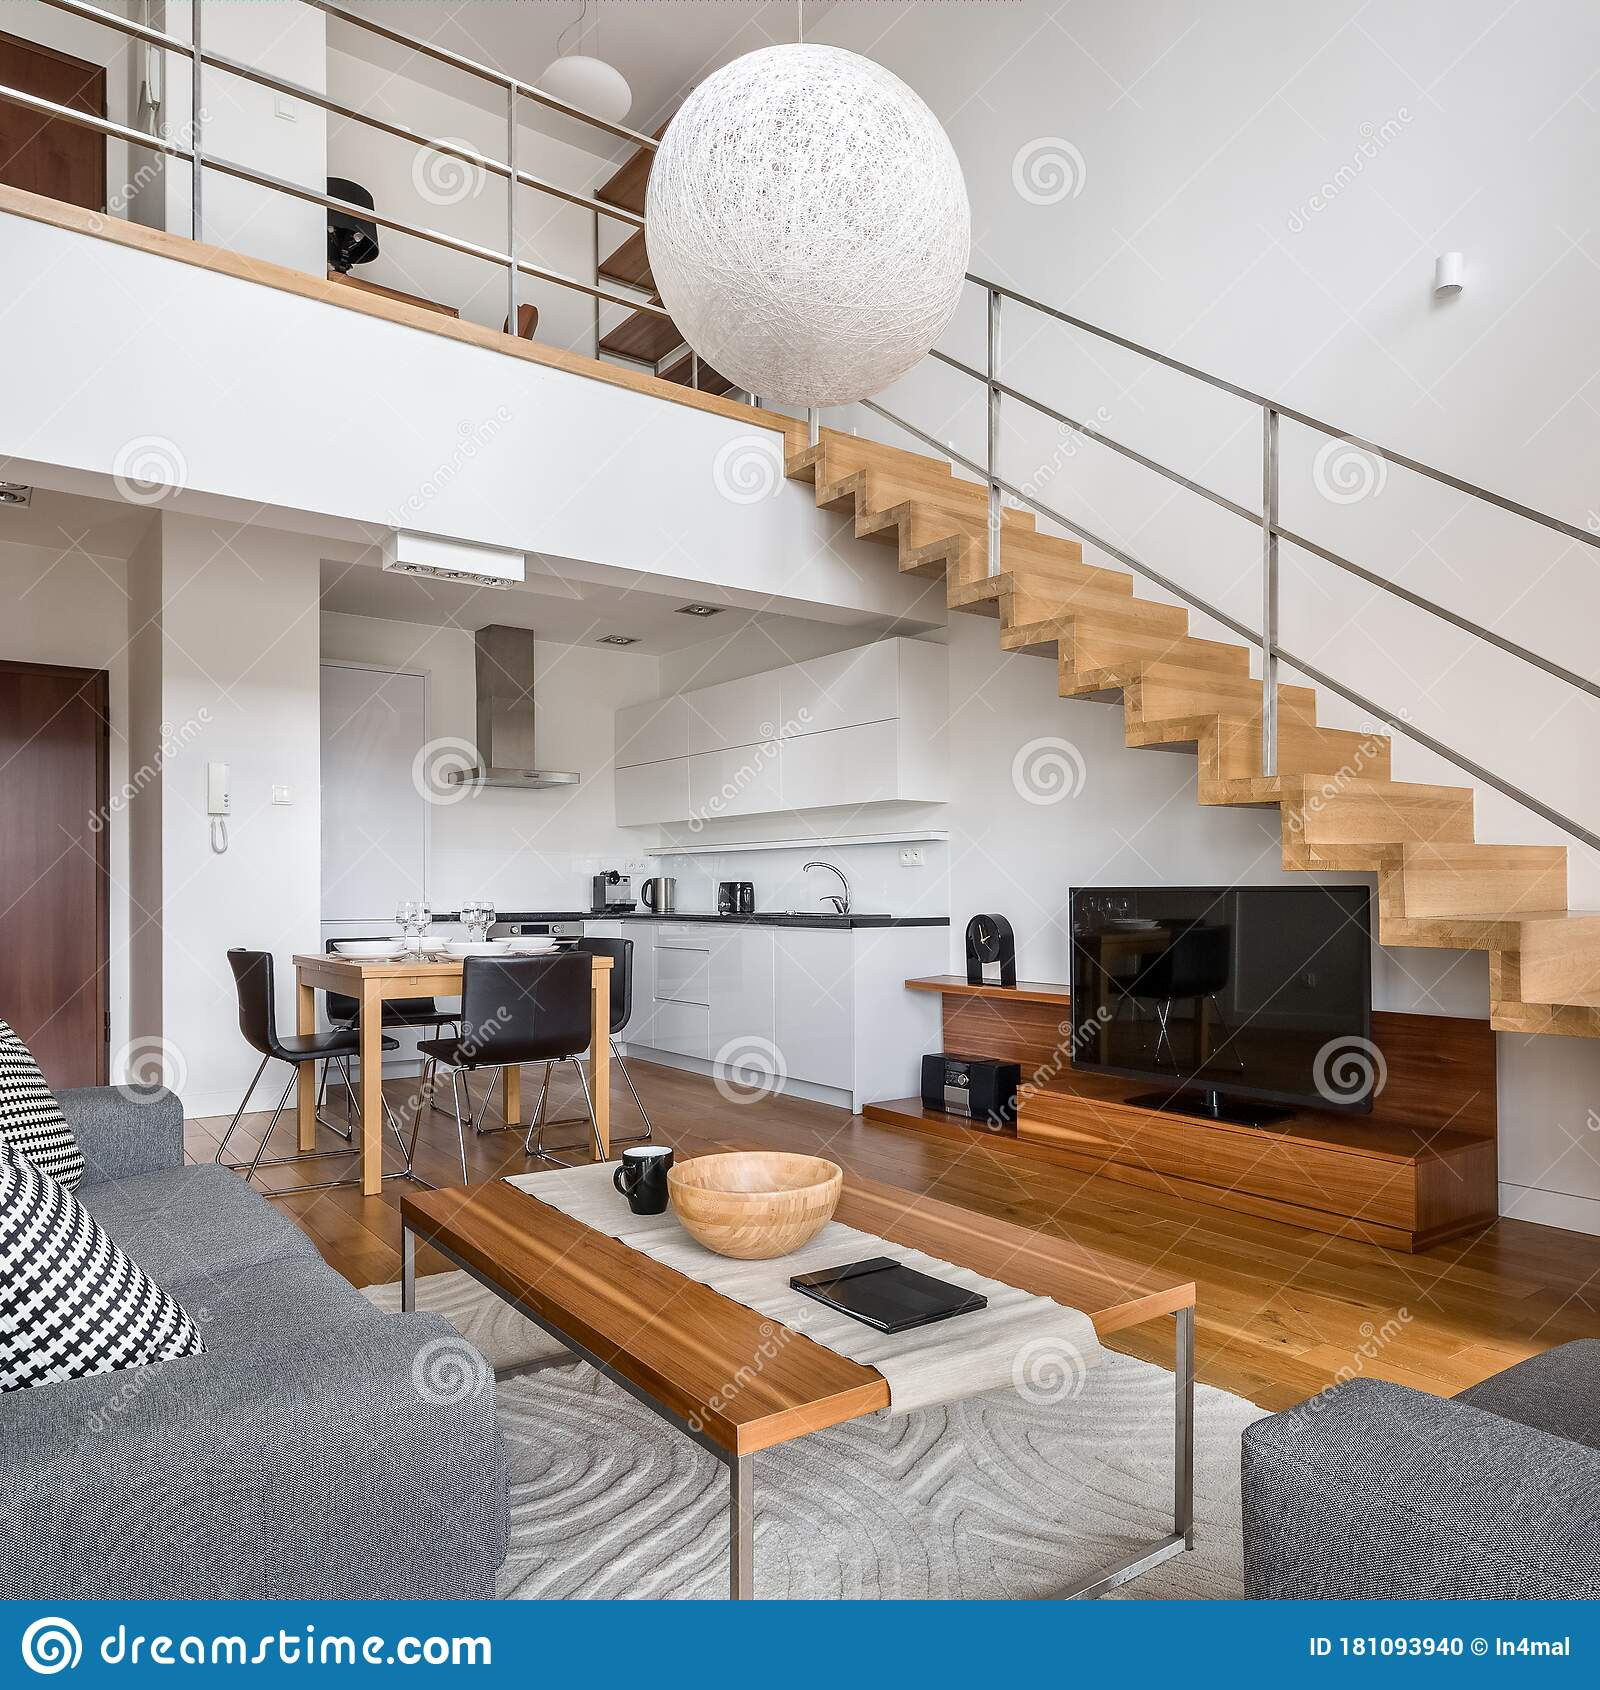 Modern Apartment With Wooden Stairs Stock Photo Image Of Flat Decor 181093940